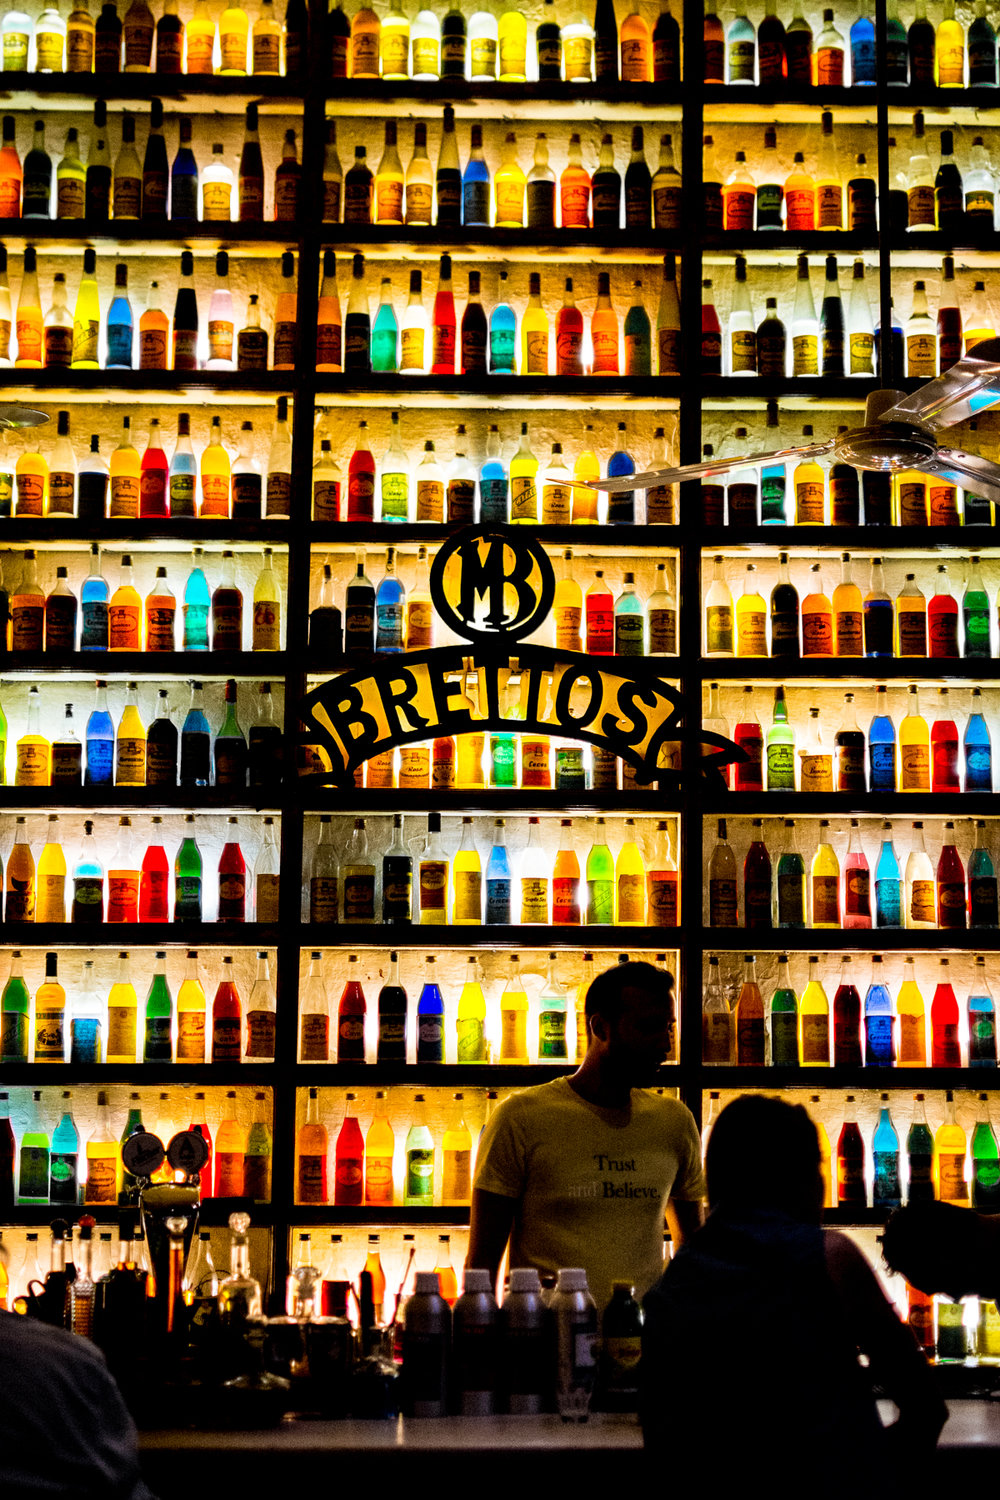 Brettos bar, and their Instagram-famous bottle wall.